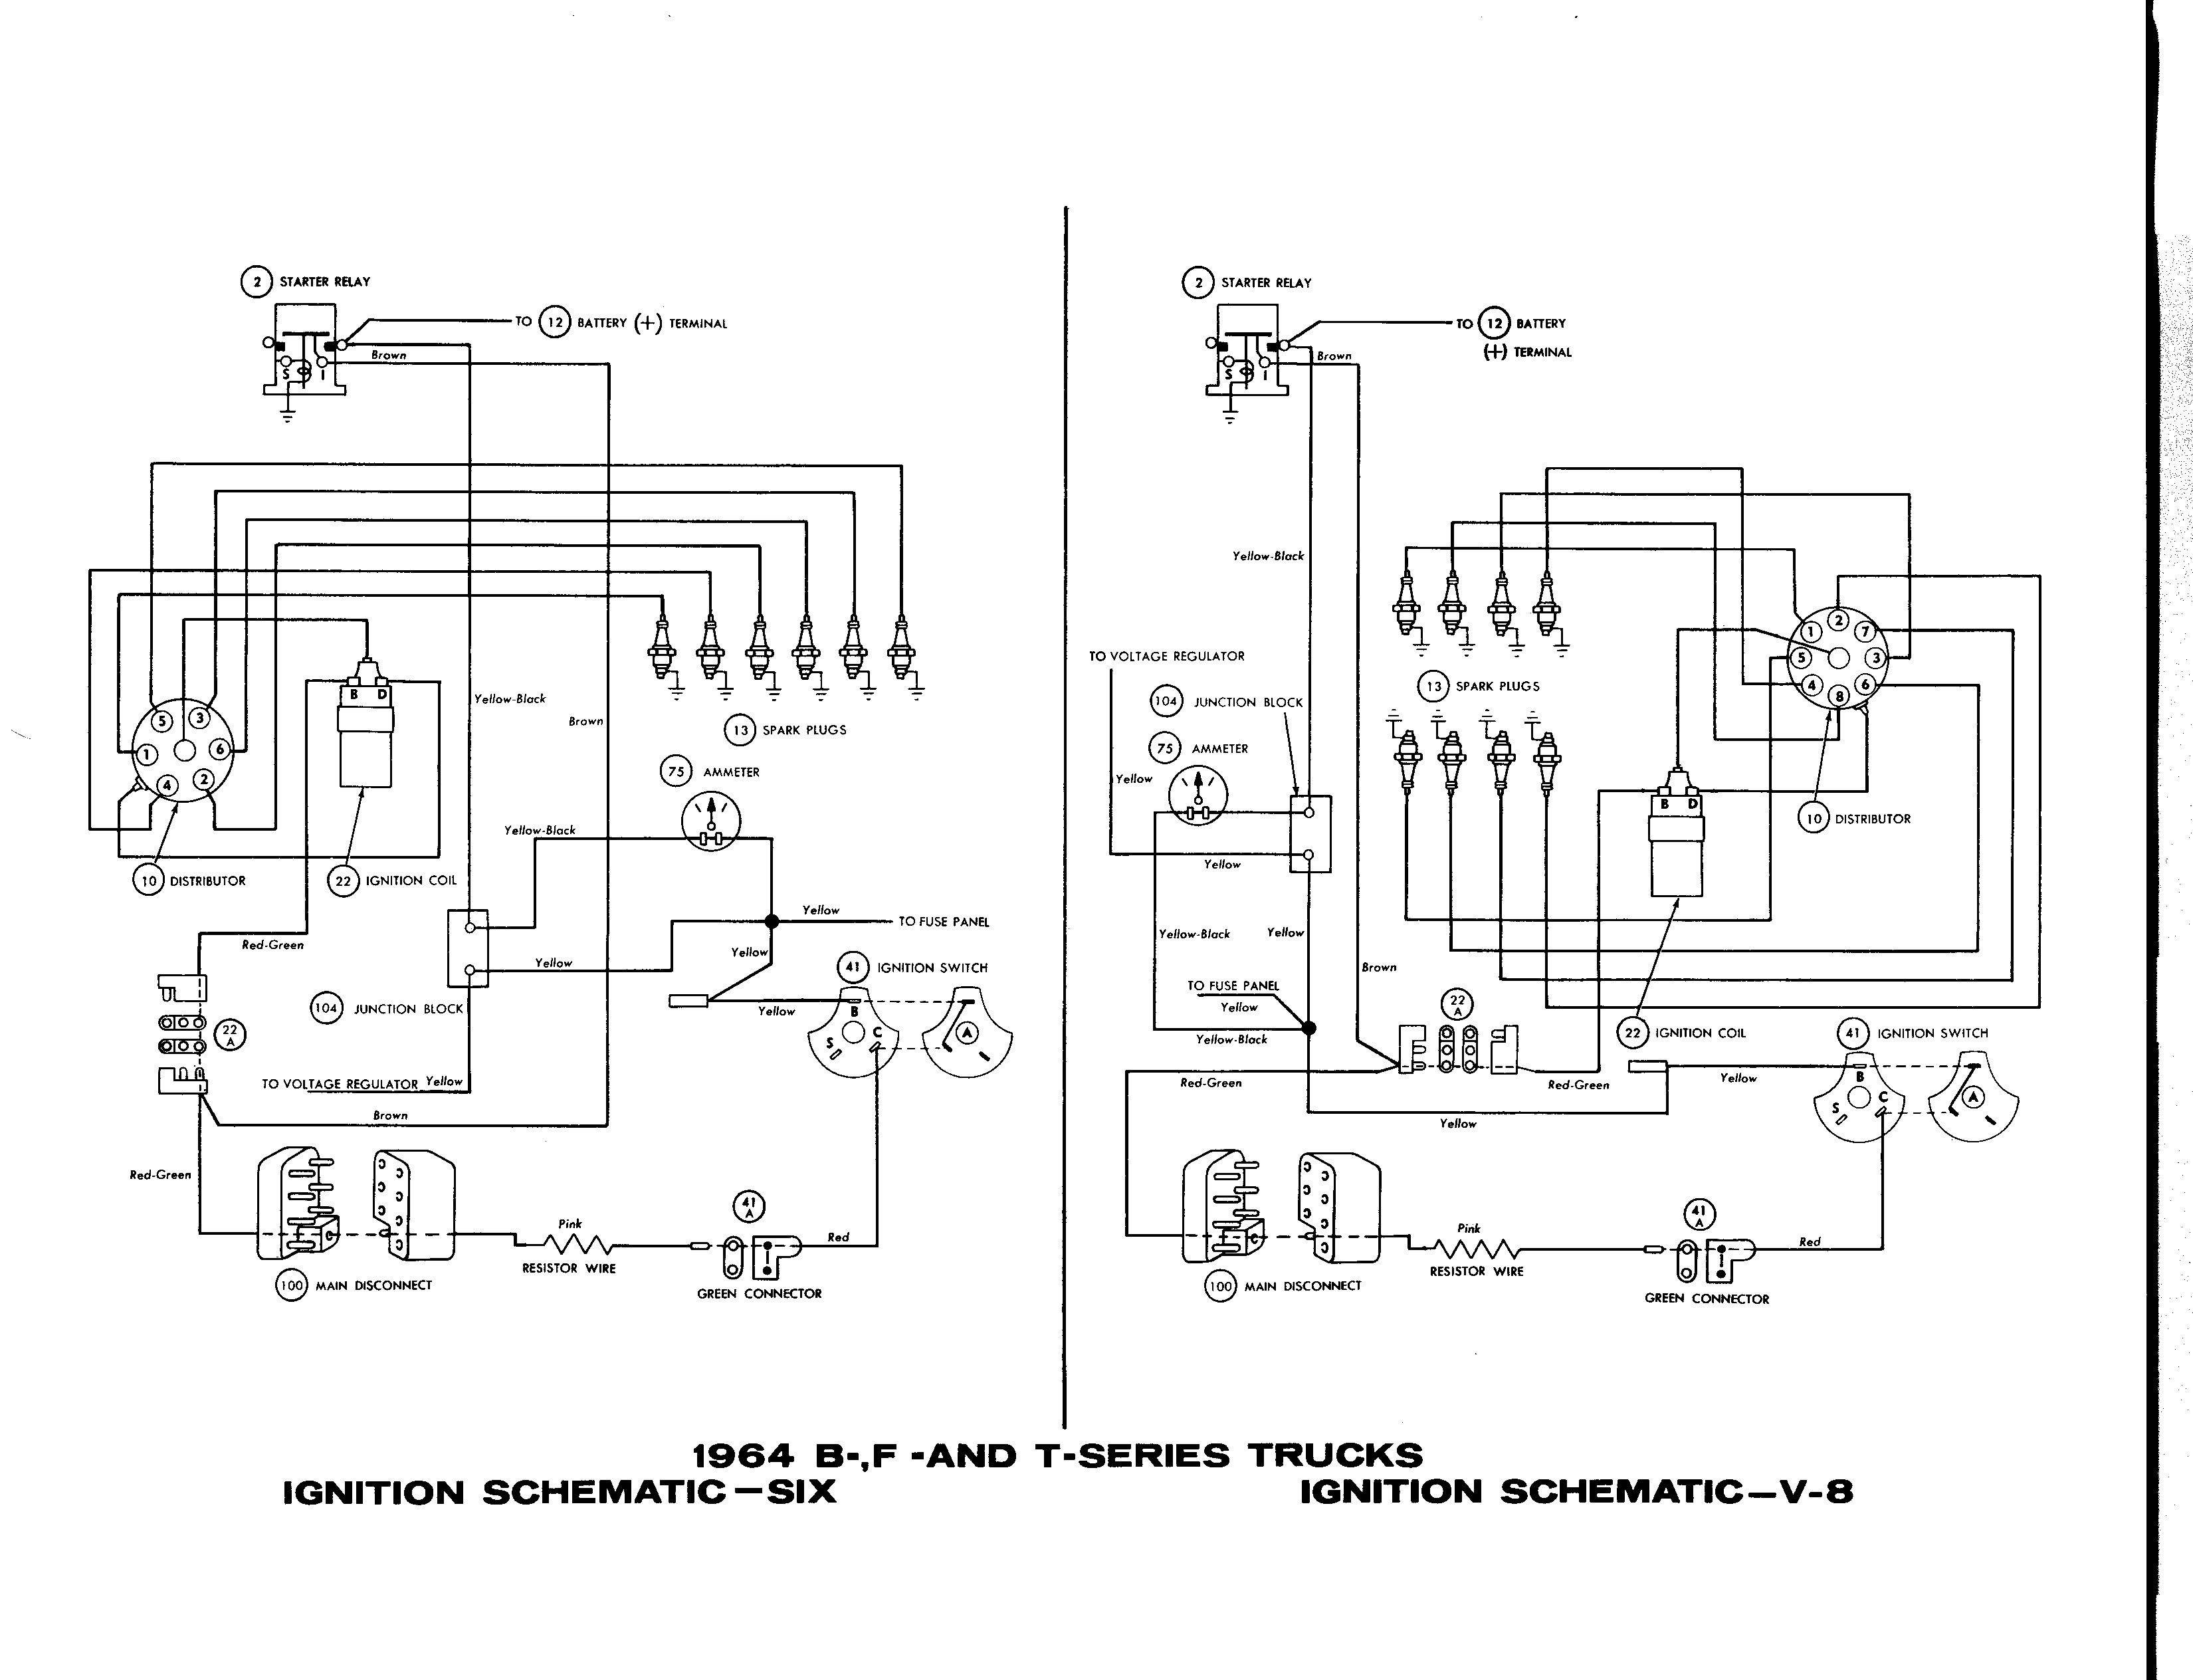 Exterior Light Turn Signals And Horns Wiring Diagrams Of 1966 Signal Diagram Ford 1964 Wire Data Schema U2022